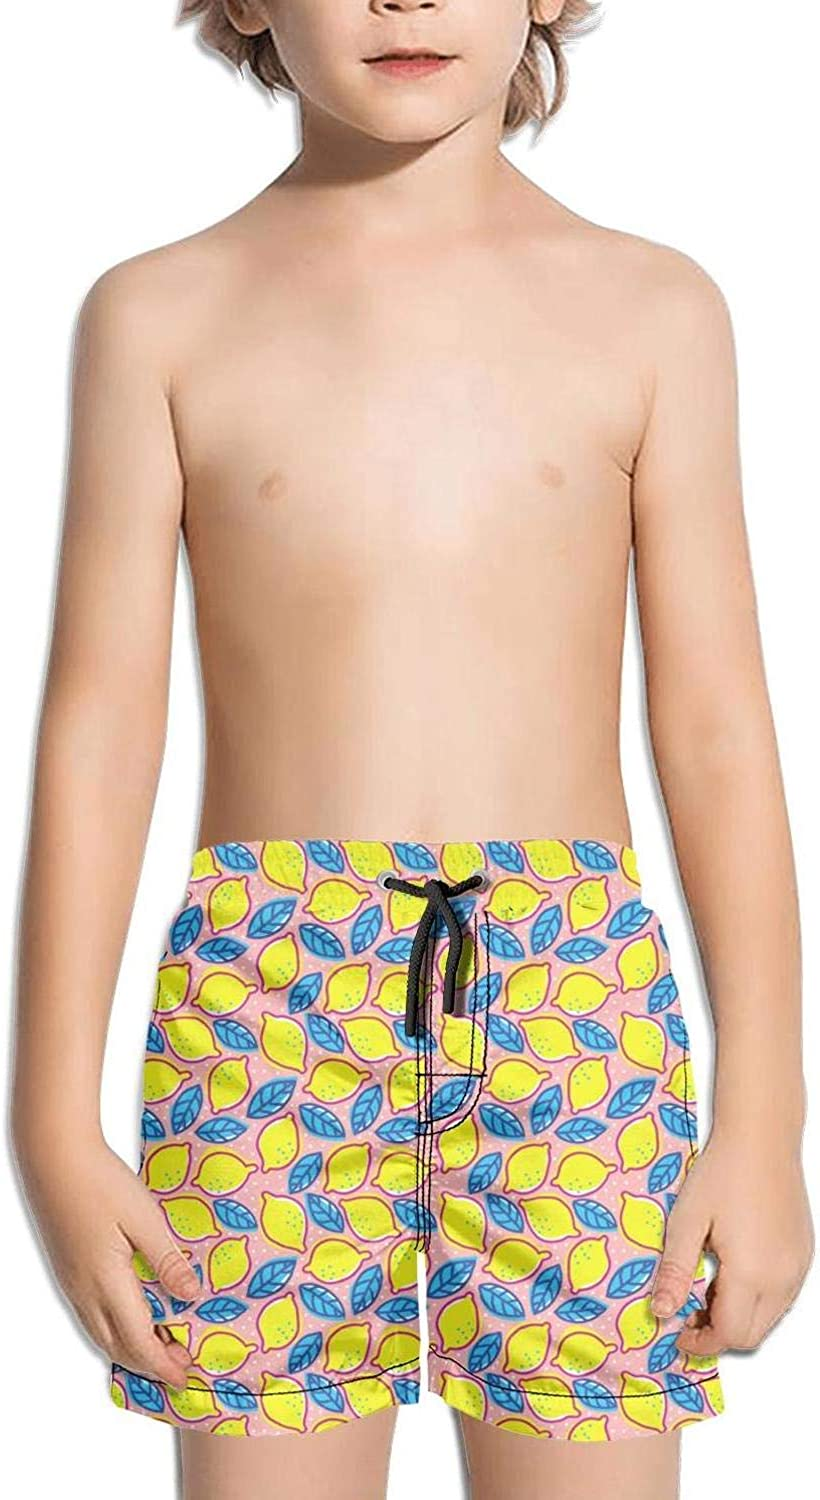 SYBING Retro Pattern with Lemon Boys Novelty 3D Printed Waterproof Surfing Hawaiian Beach Surfing Board Shorts